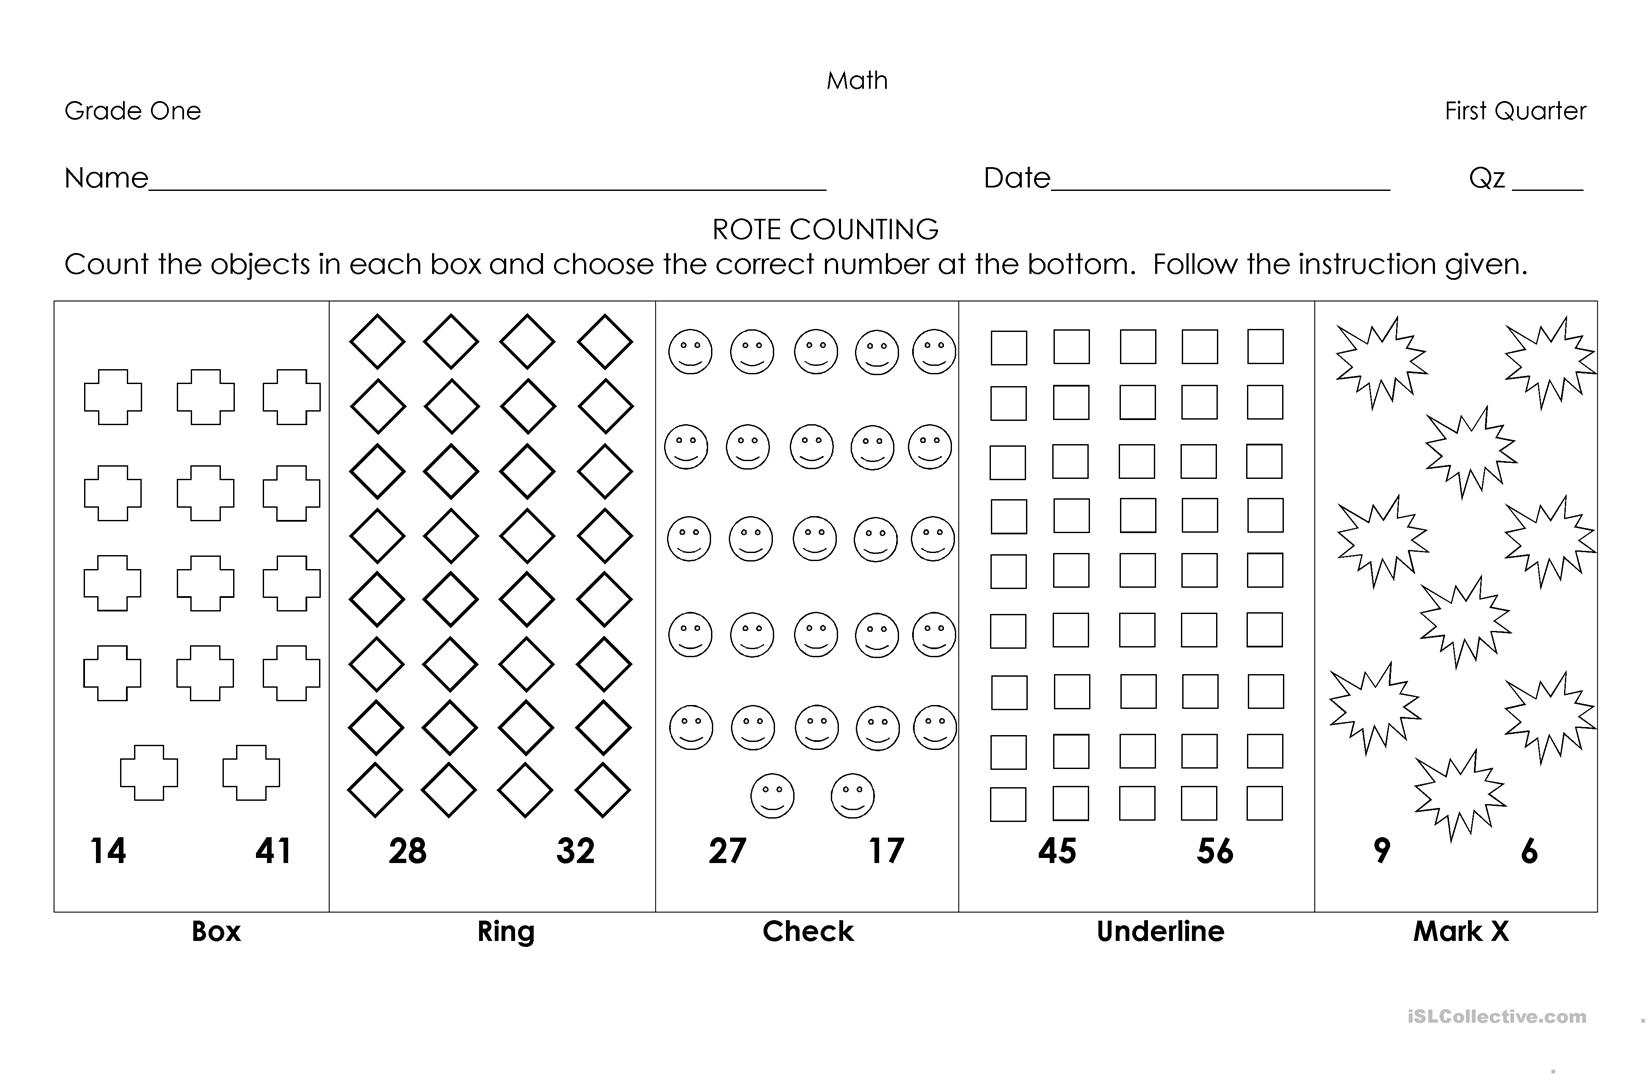 Rote Counting Worksheet